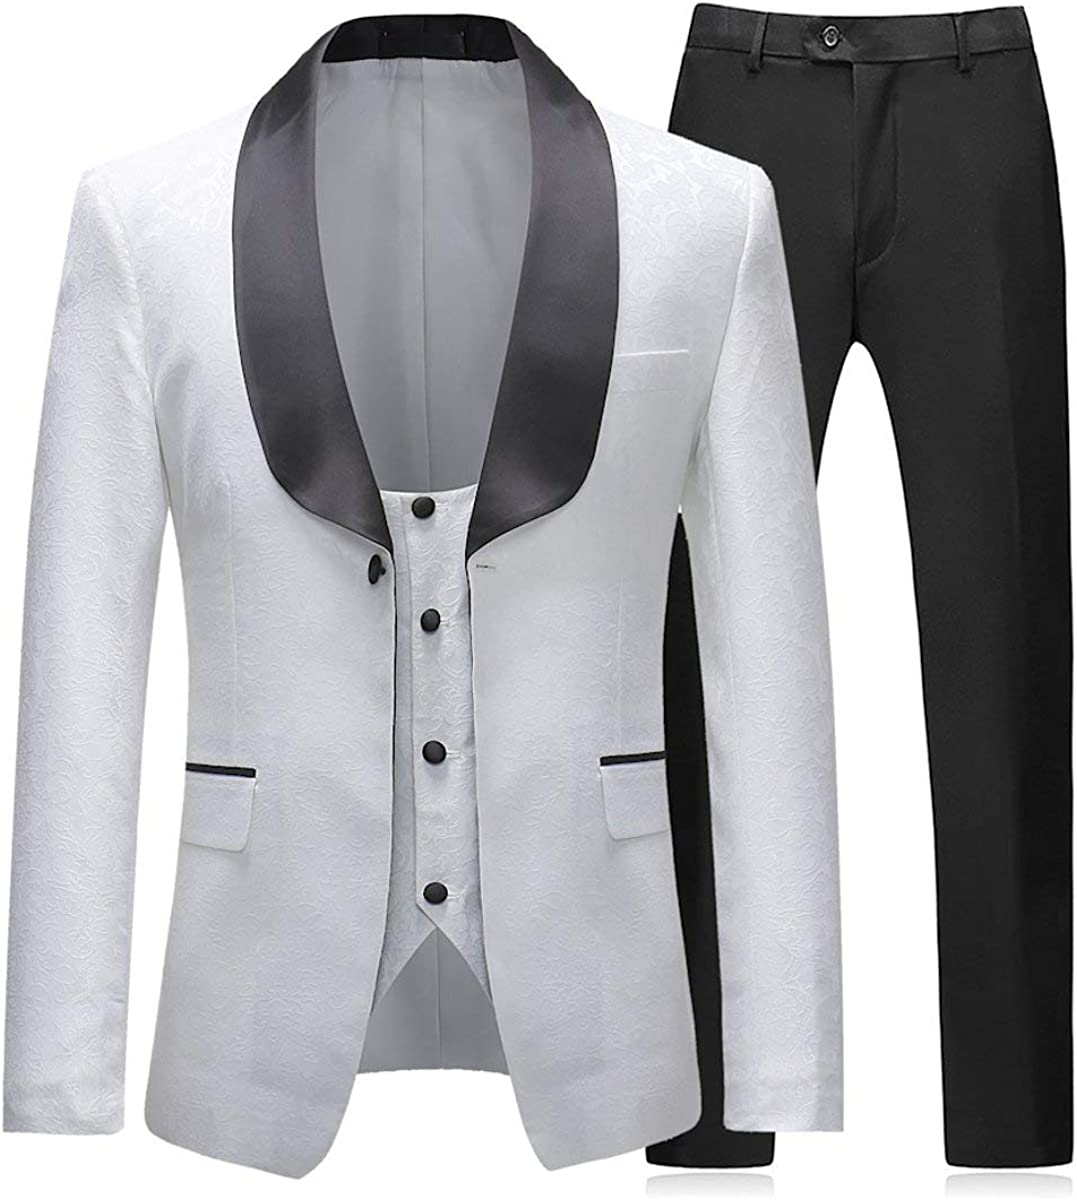 Frank Men's 3 Pieces Tuxedos Vintage Groomsmen Wedding Complete Outfits Prom Formal Tuxedo Suit